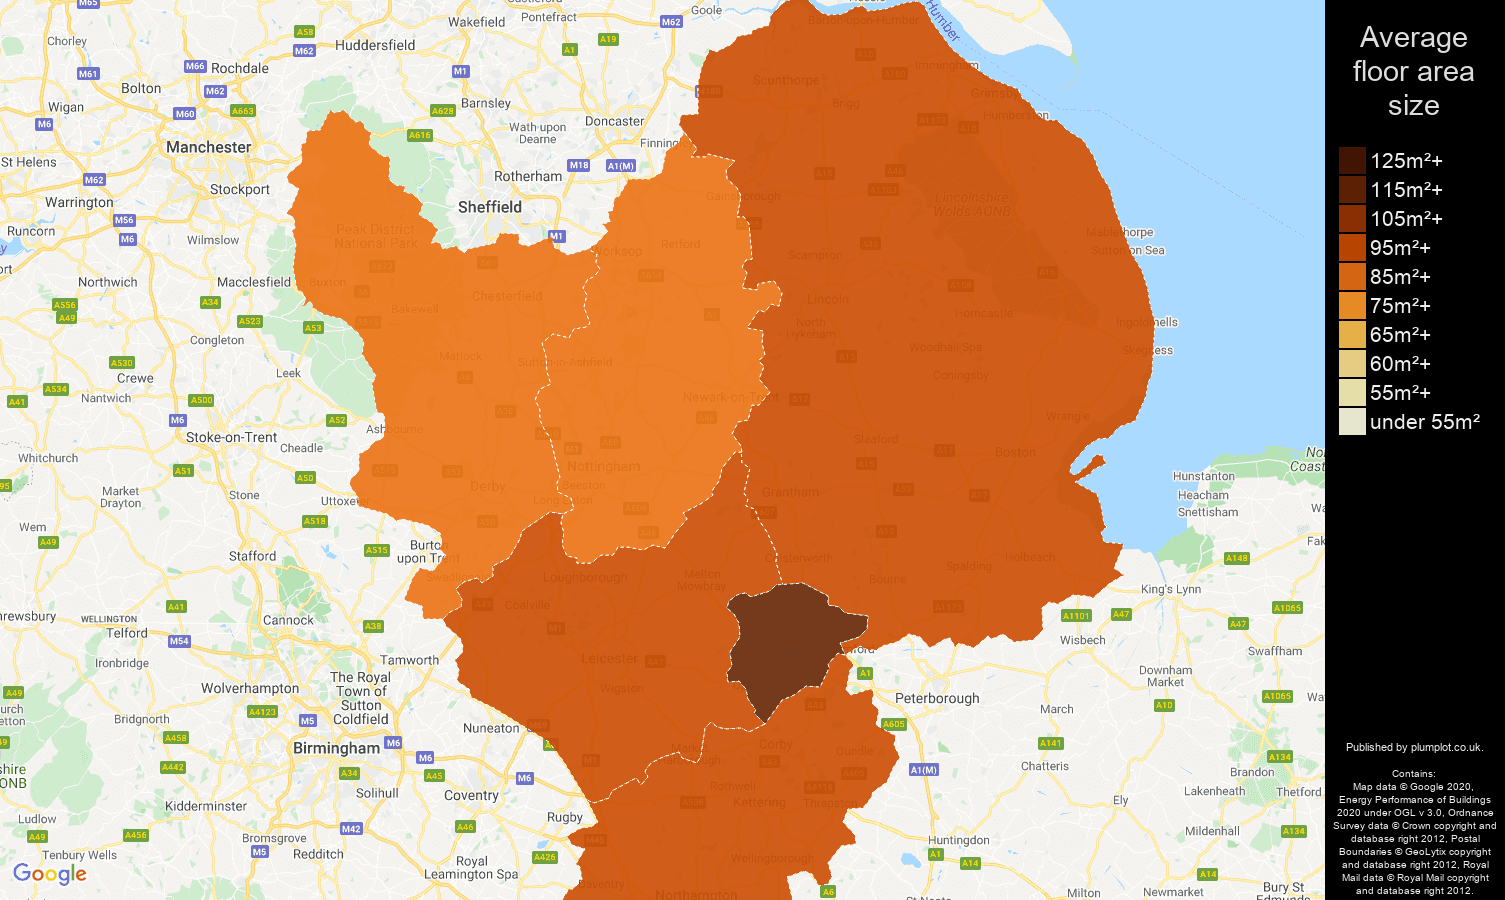 East Midlands map of average floor area size of houses